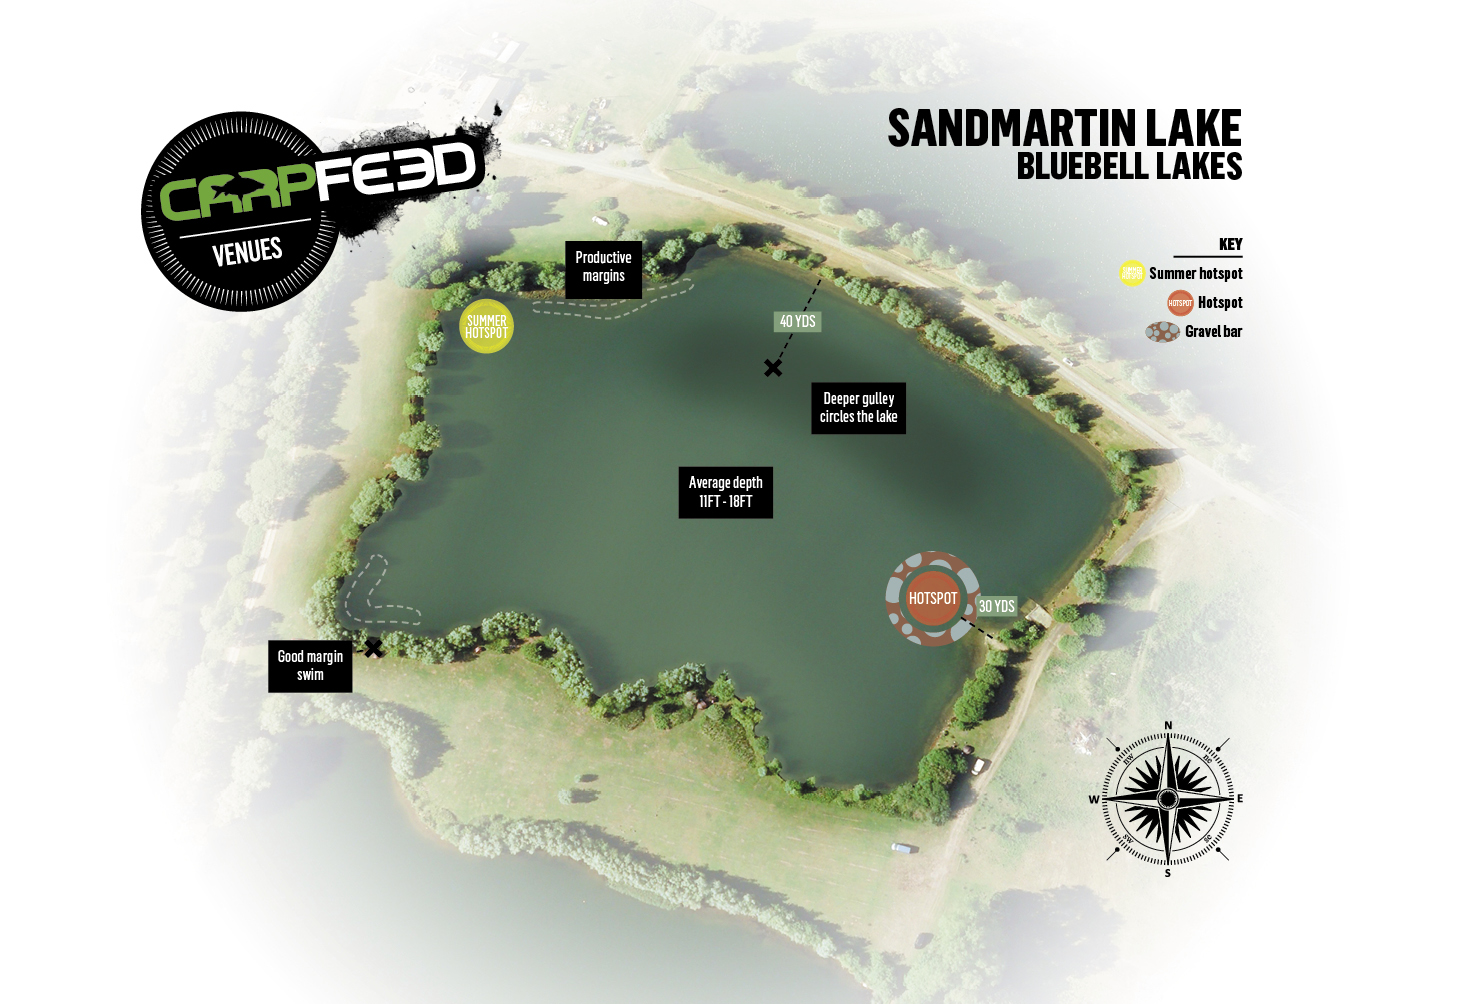 CLICK THE MAP FOR OUR GUIDE TO SANDMARTIN